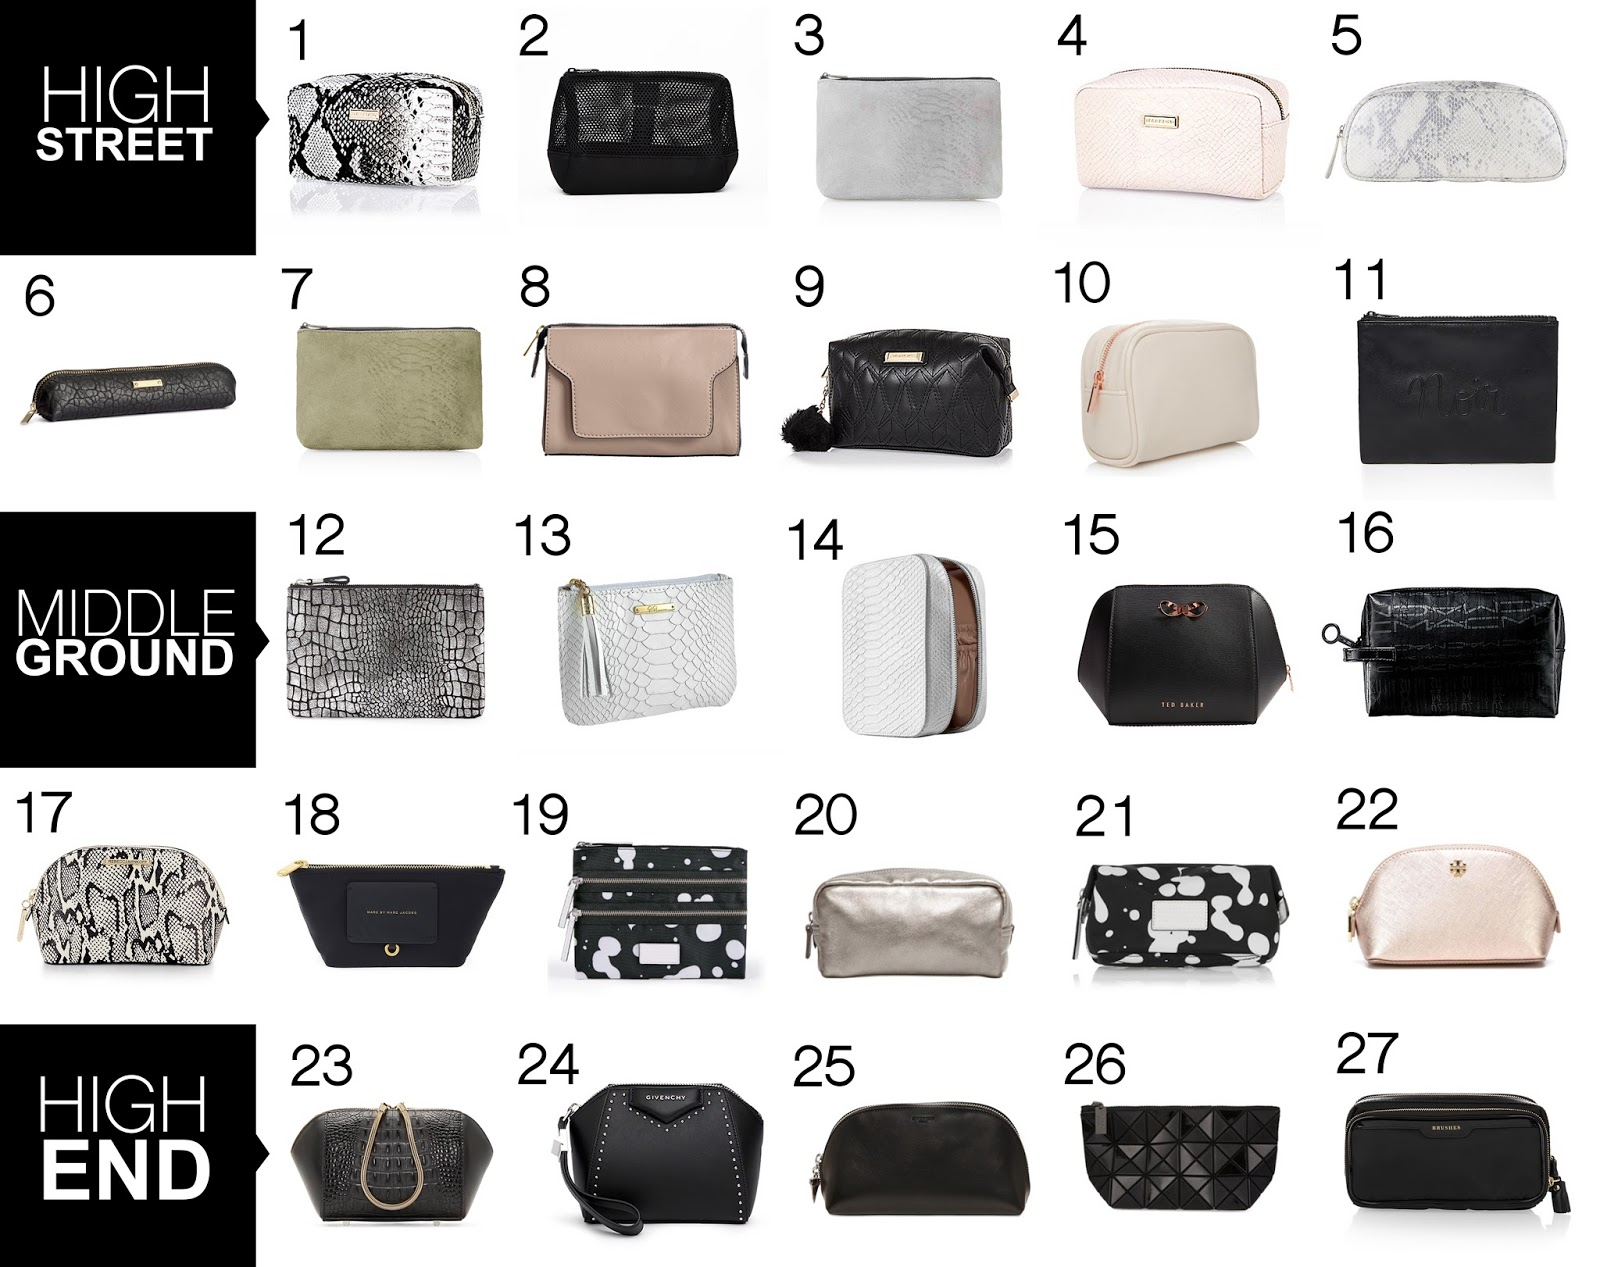 MUST HAVE MAKEUP BAGS